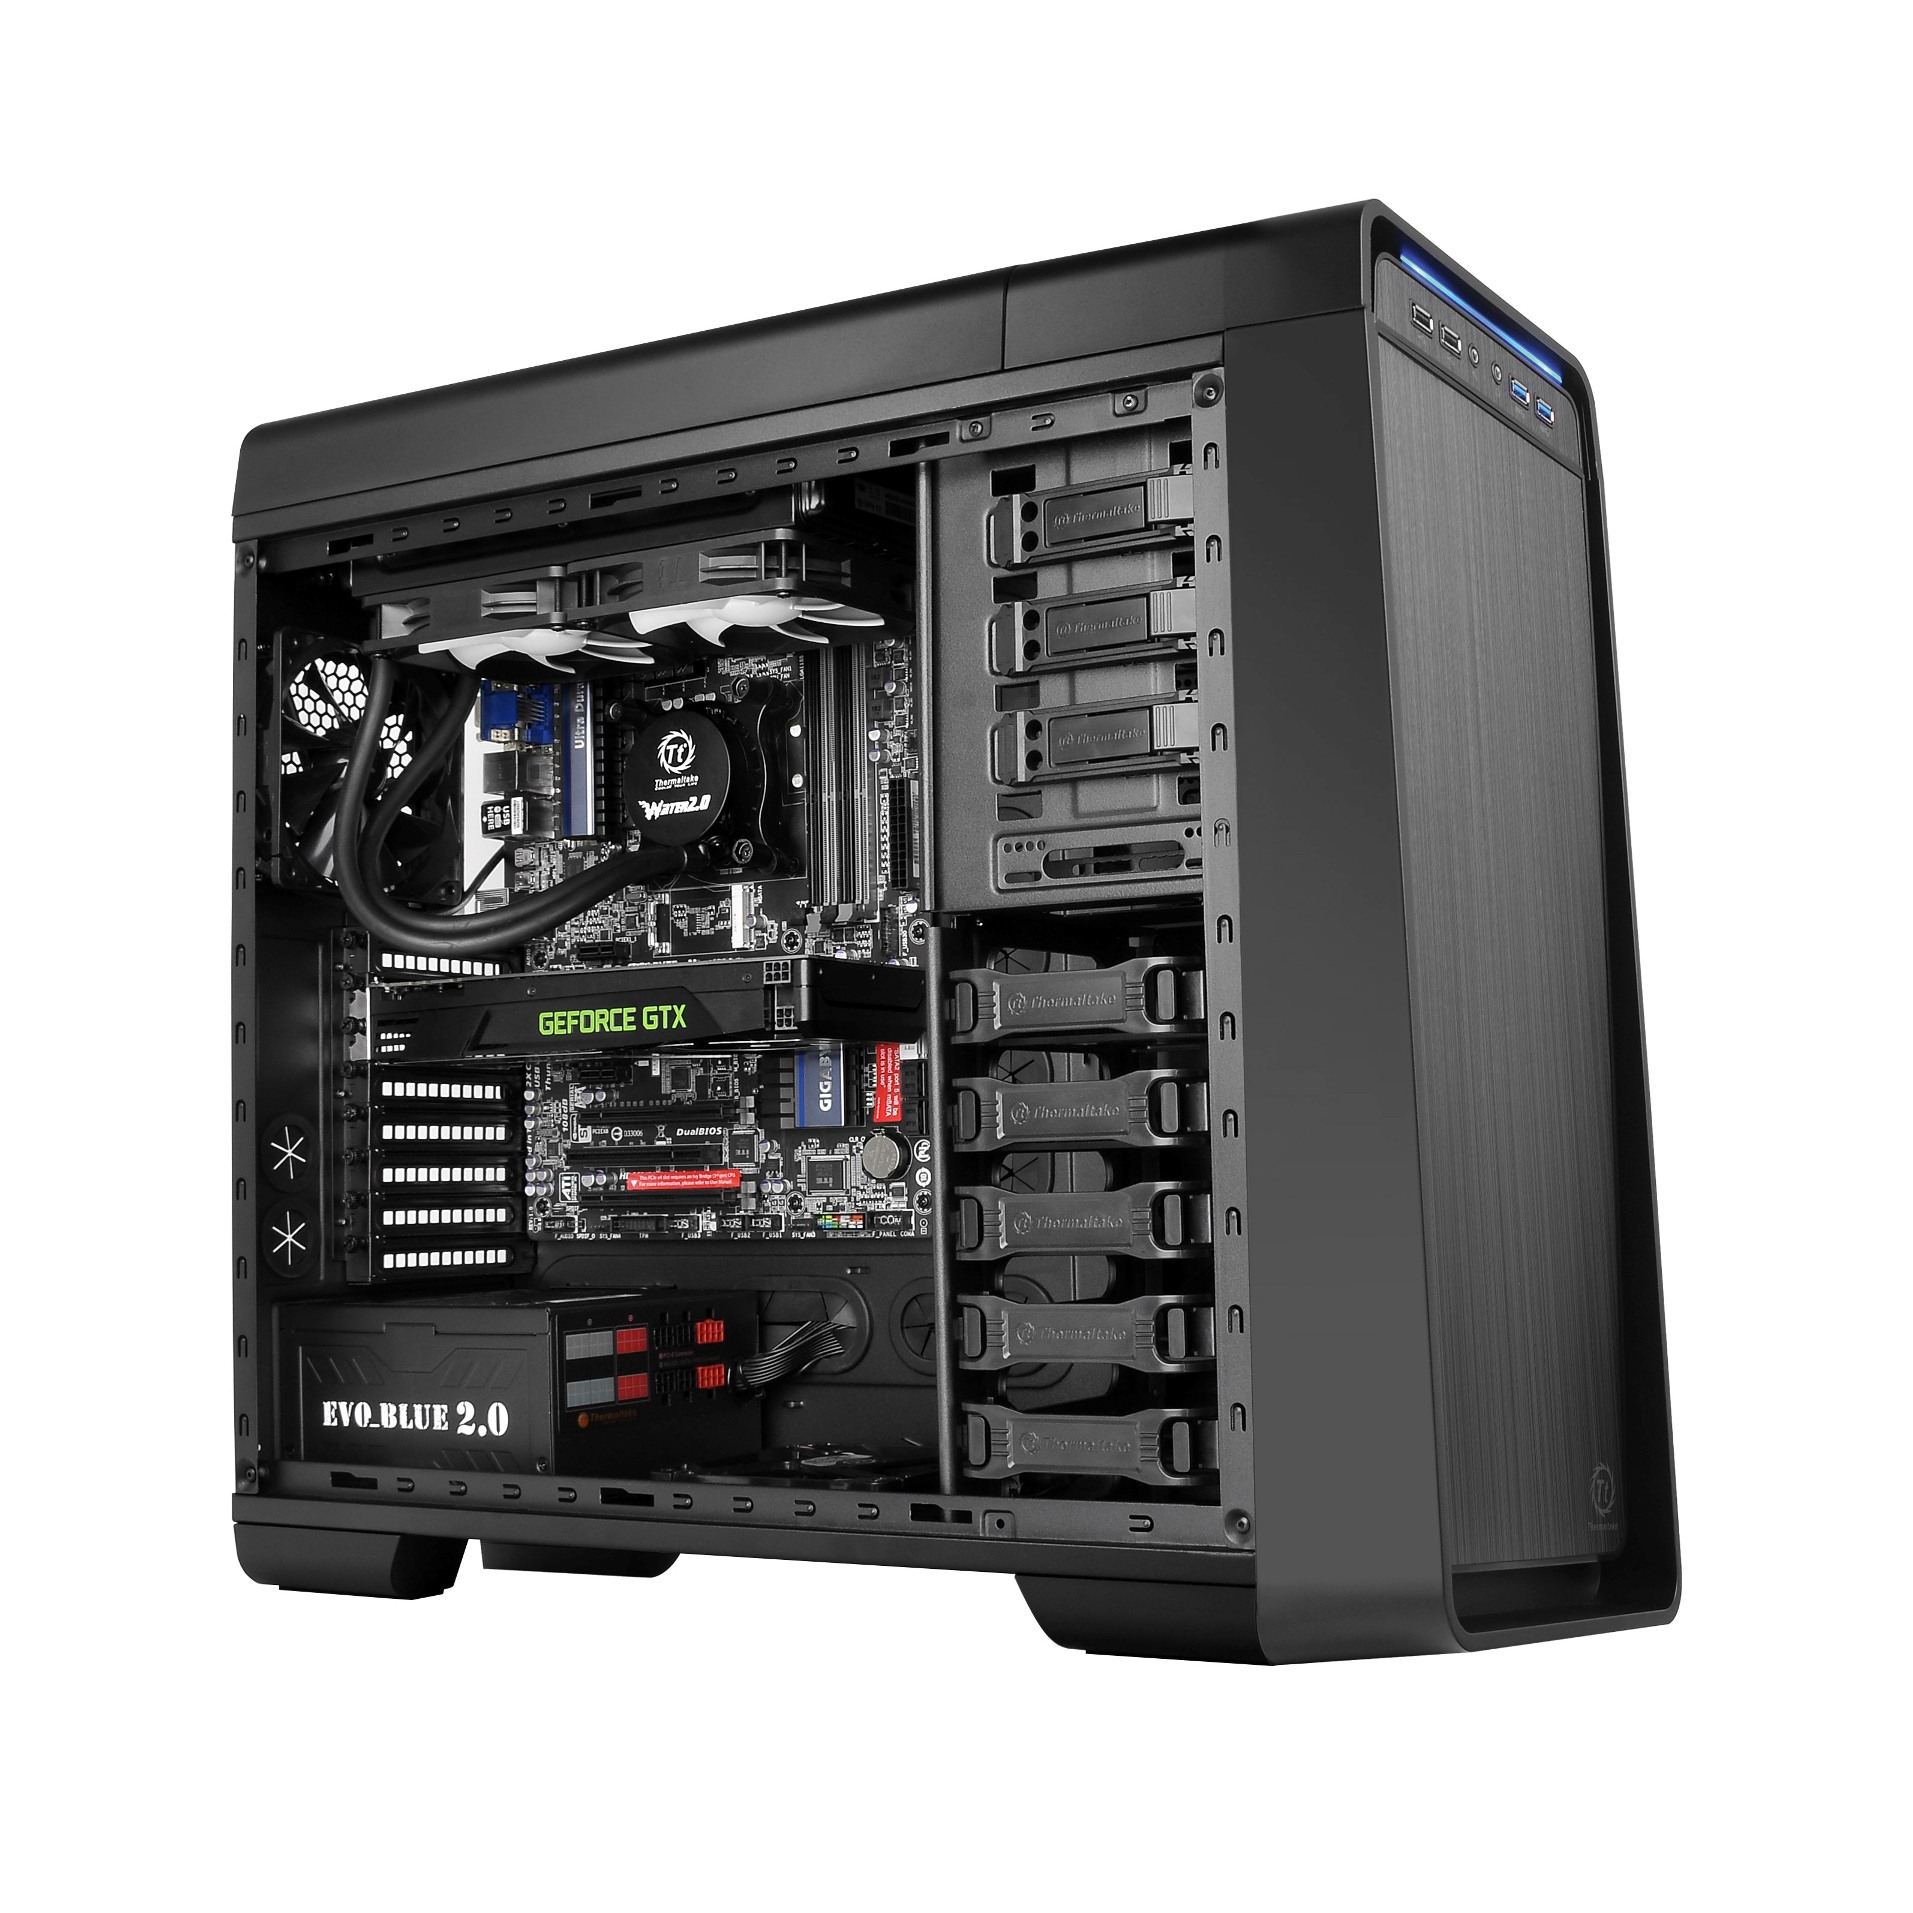 Thermaltake Urban S71 Full-tower Chassis with greater spacious interior